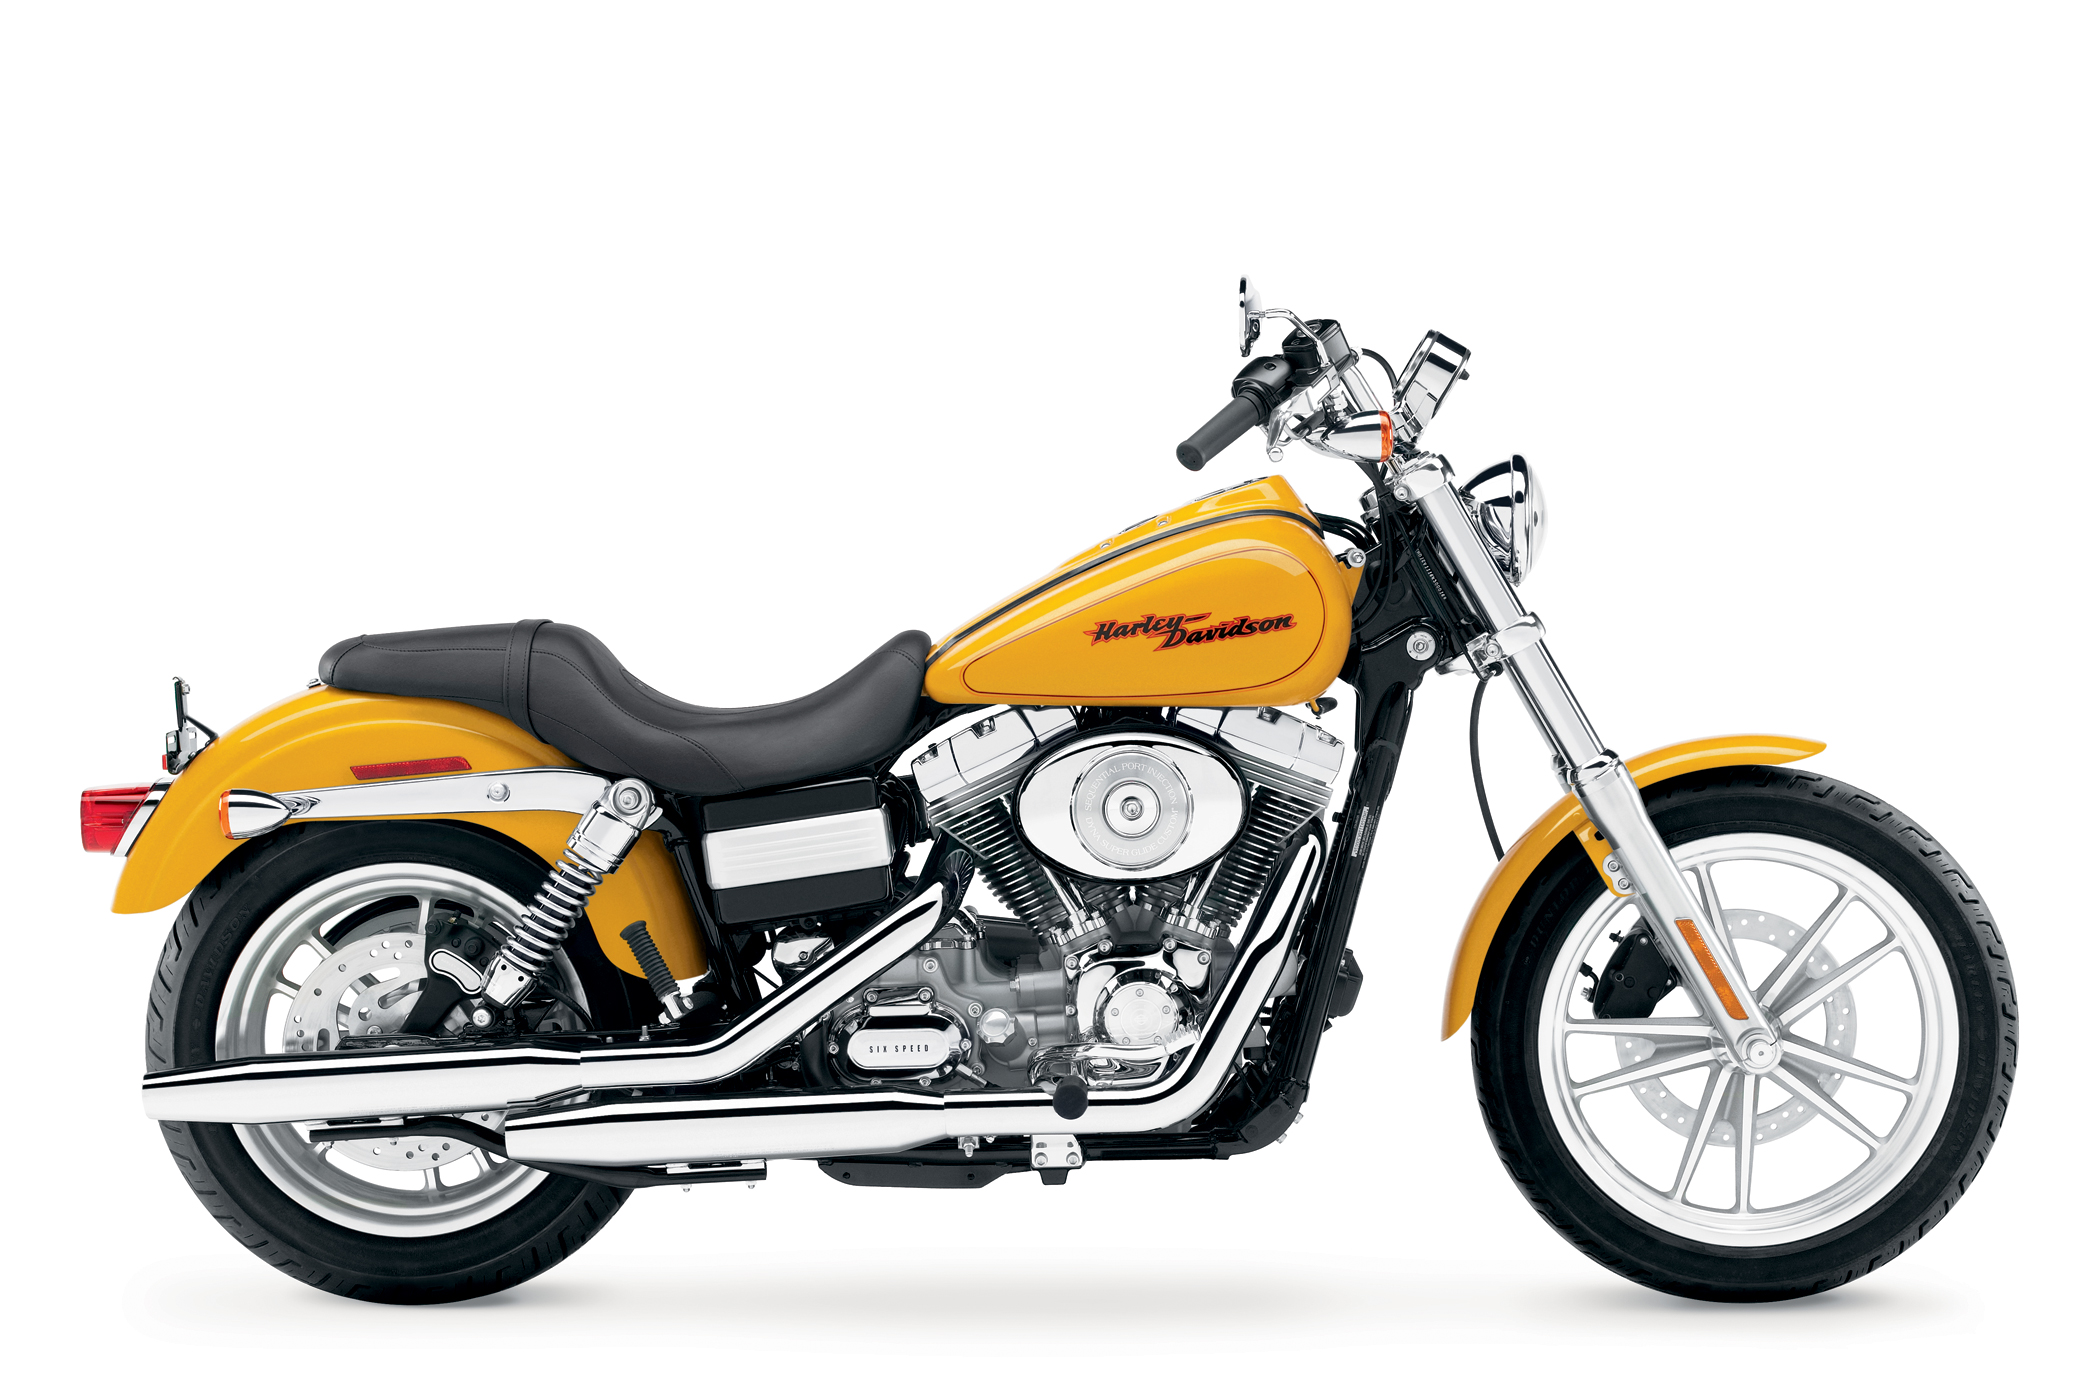 2006 harley davidson fxdc i dyna super glide custom review top speed. Black Bedroom Furniture Sets. Home Design Ideas